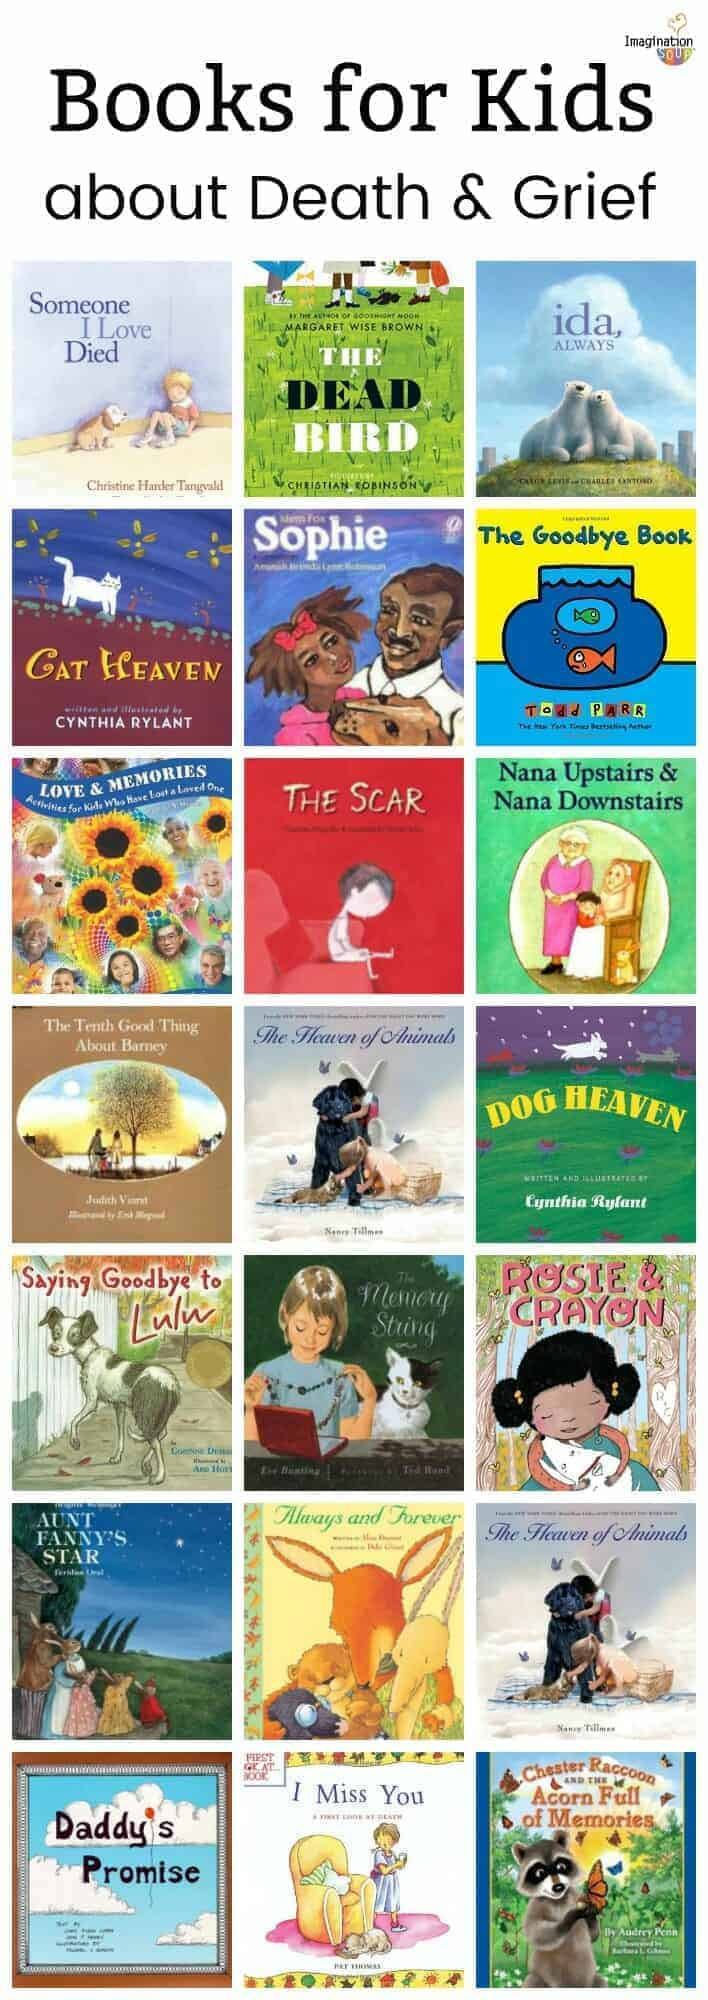 21 helpful picture books for children about grief and the death of a parent, relative, friend, or pet